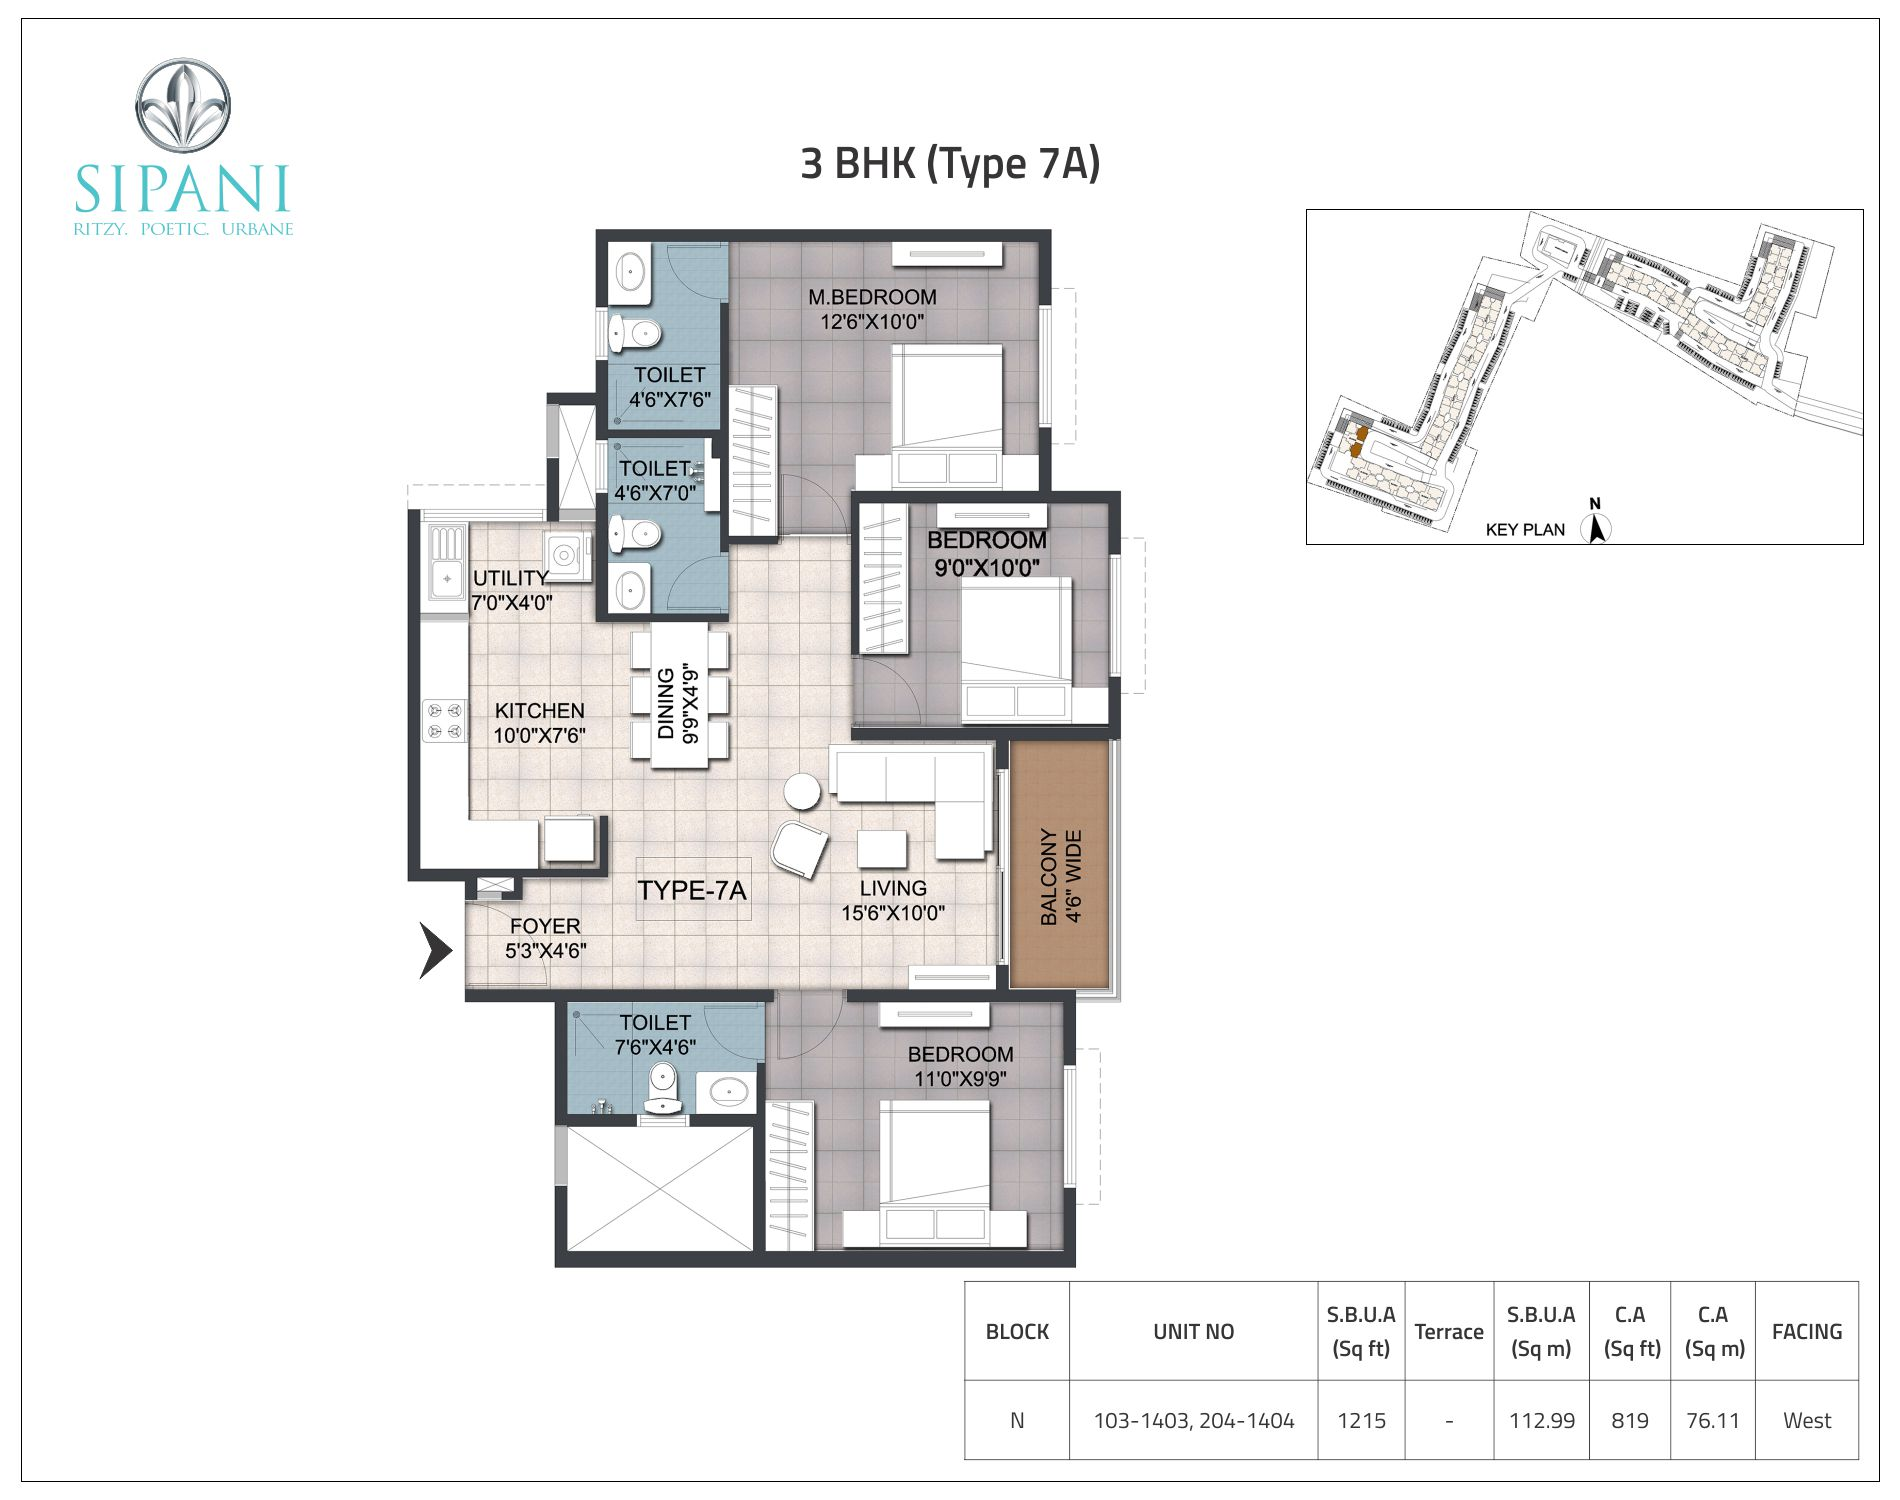 3_BHK_(Type_7A)